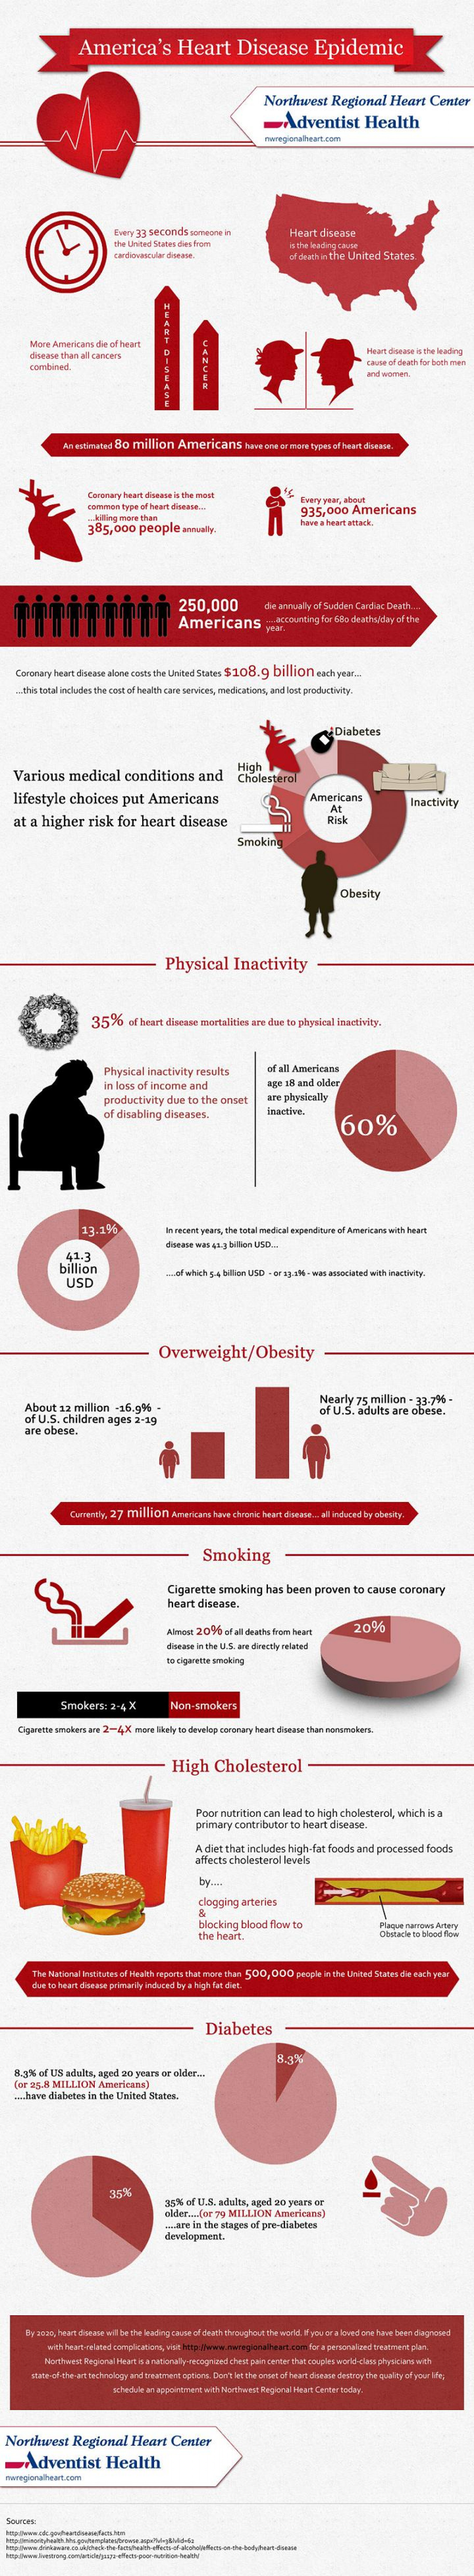 America's Heart Disease Epidemic Infographic